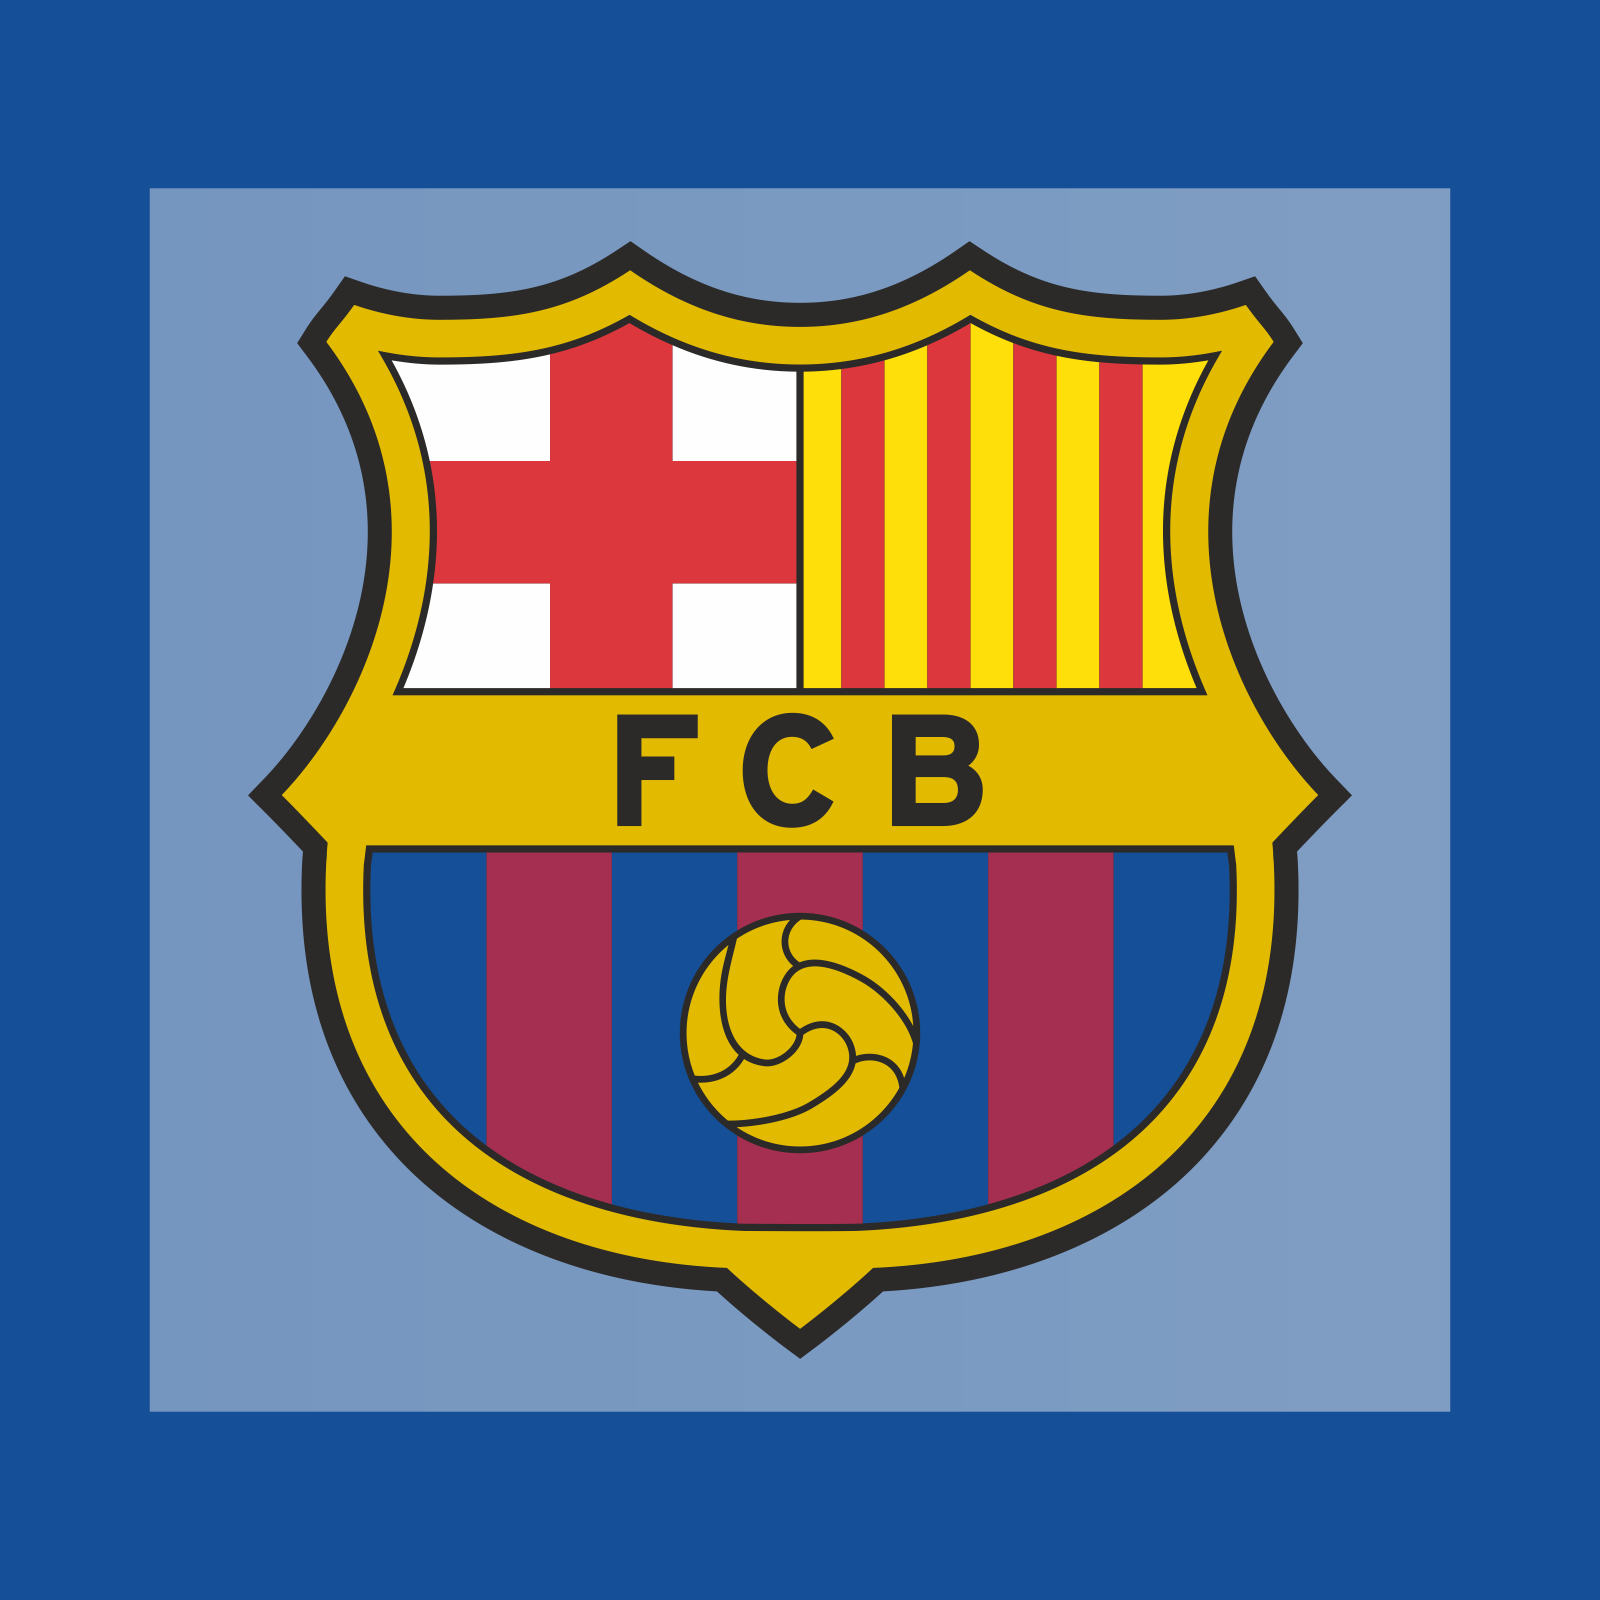 Escudo Fc Barcelona Club Badge Crest Patch Kitroom Football